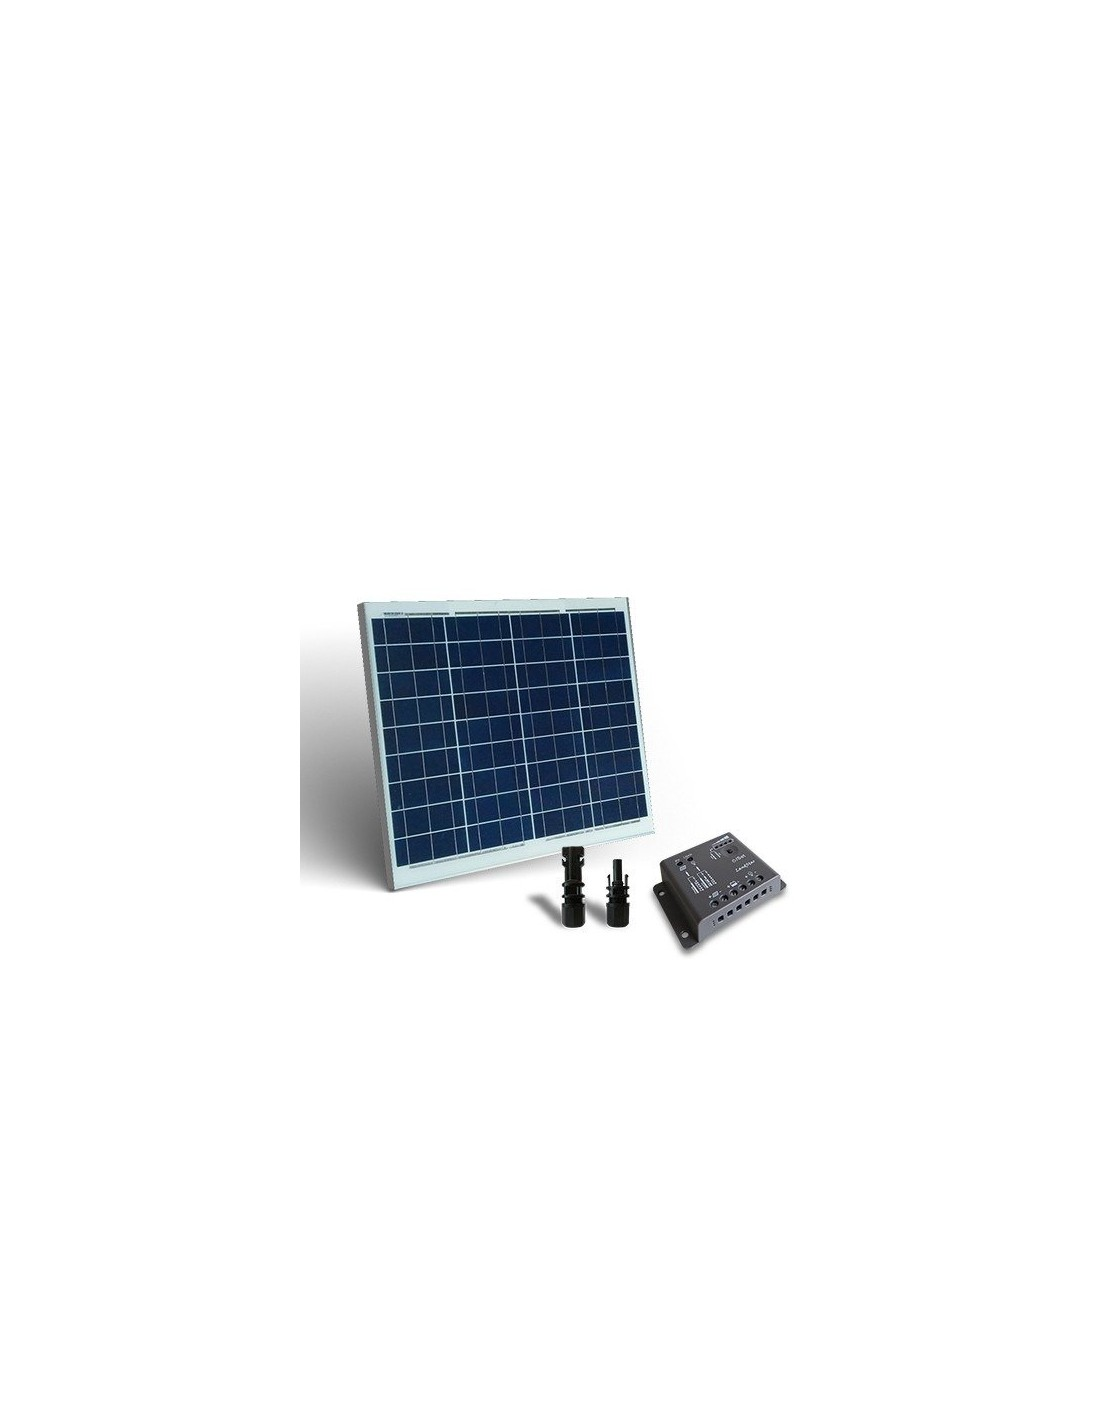 kit solaire 50w base panneau photovoltaique regulateur de charge 5a pwm. Black Bedroom Furniture Sets. Home Design Ideas